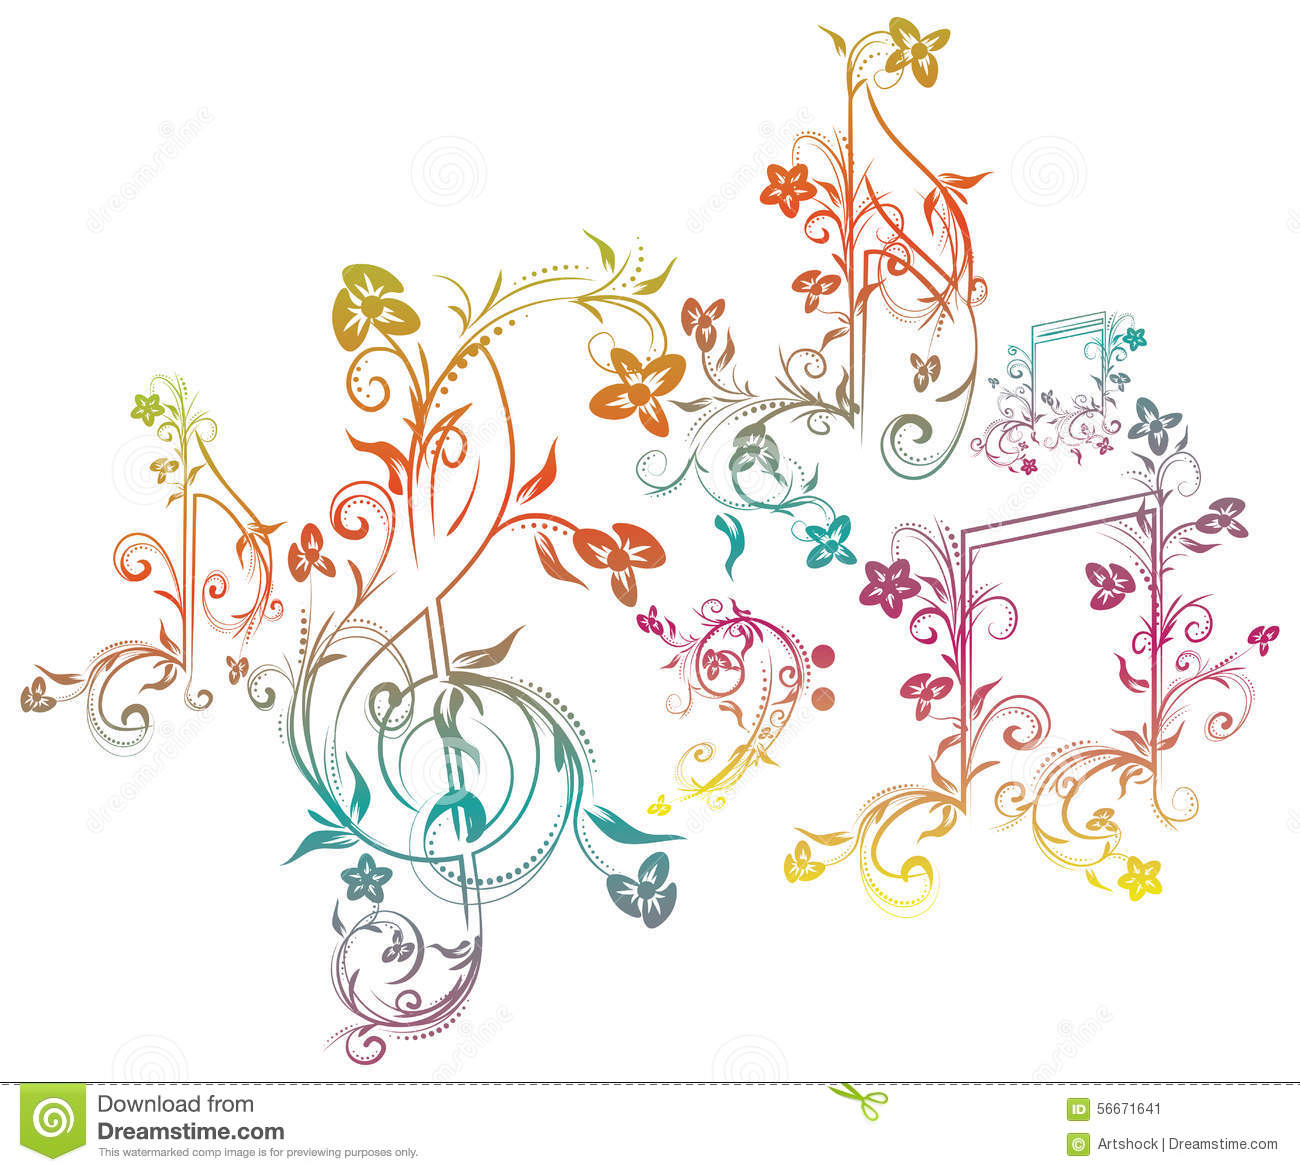 music notes backgrounds floral - photo #6